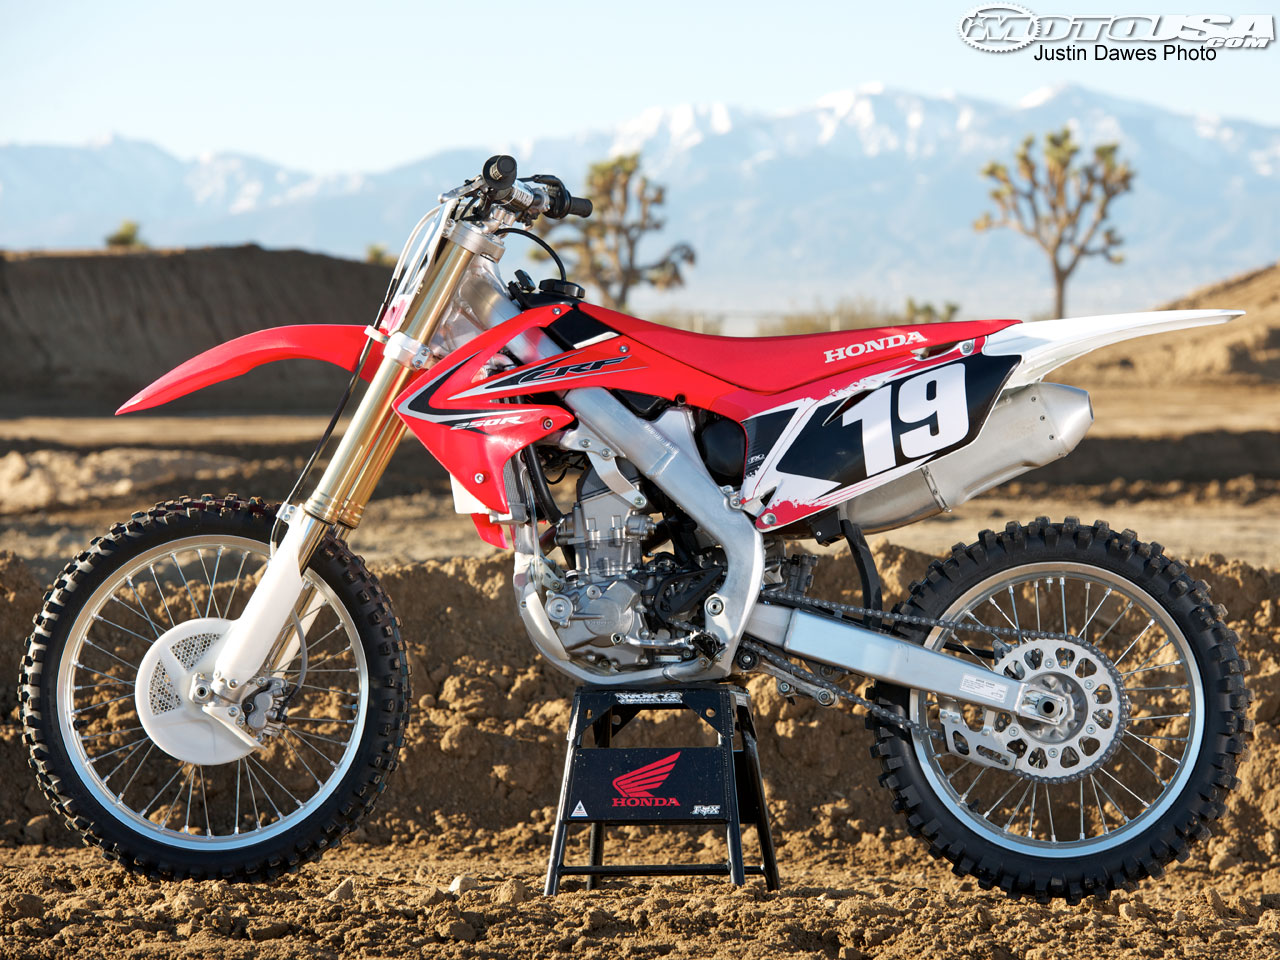 Crf250r Seat Height In Inches